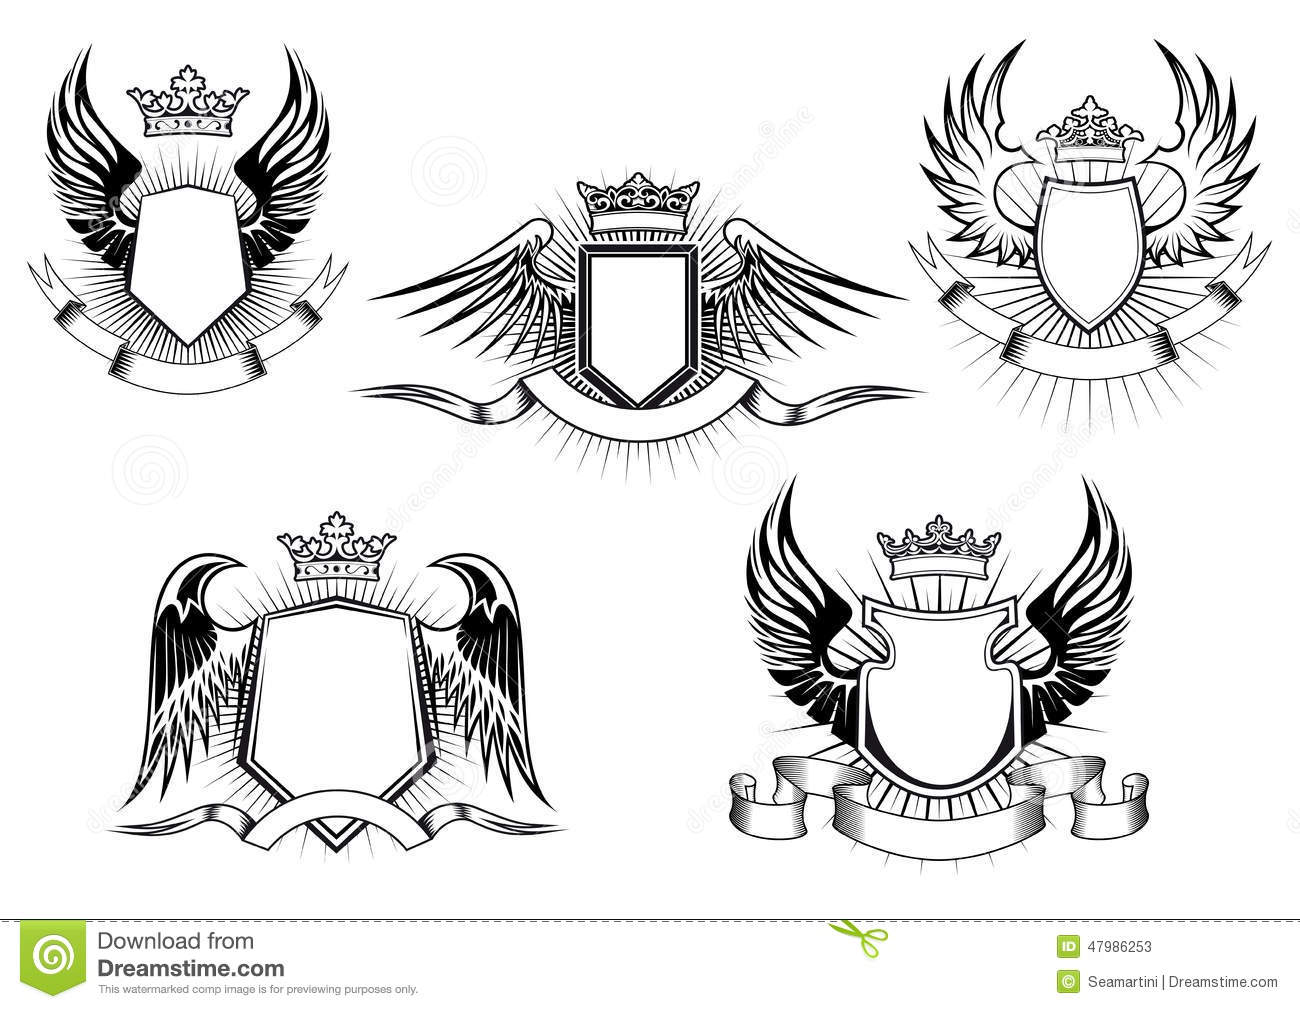 coat of arms knight shield templates stock vector illustration of